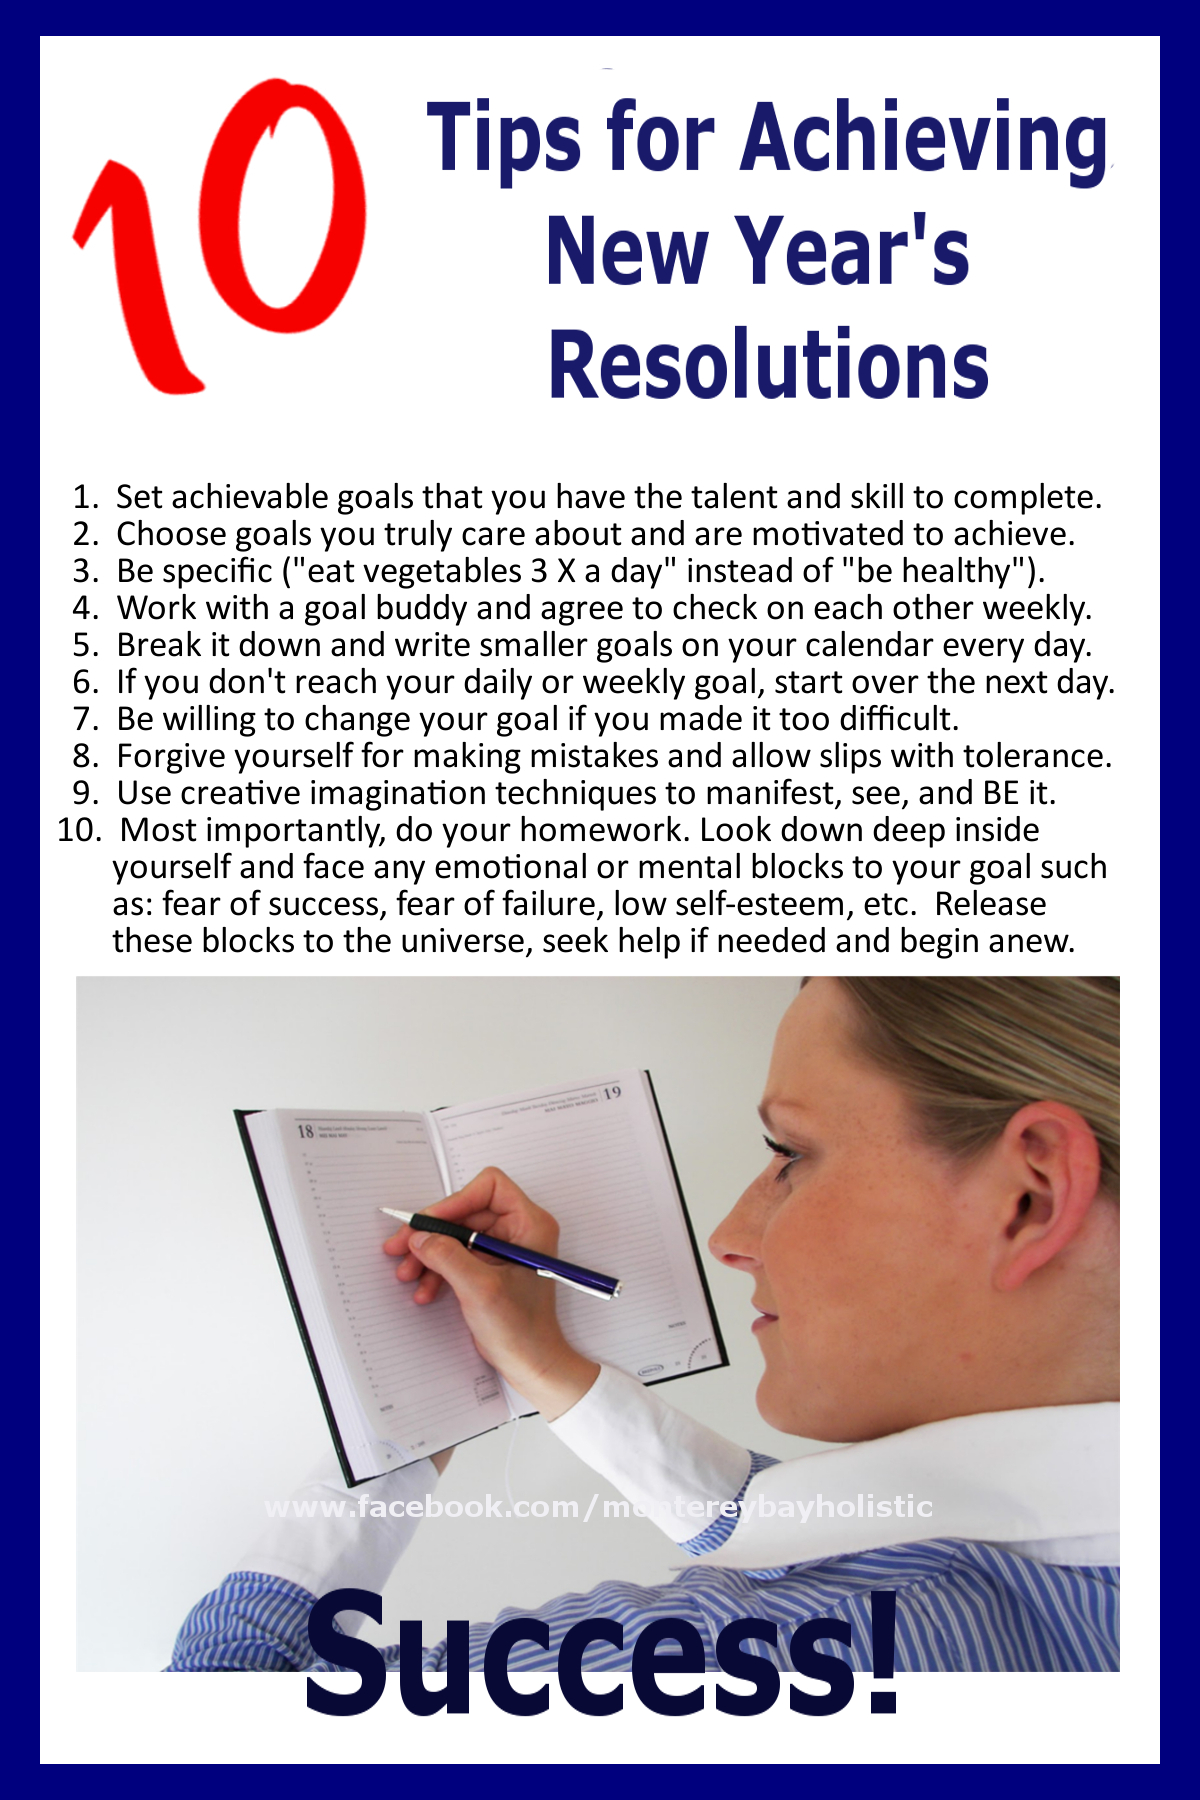 10 Reasons Why New Year's Resolutions Fail 10 Reasons Why New Year's Resolutions Fail new picture